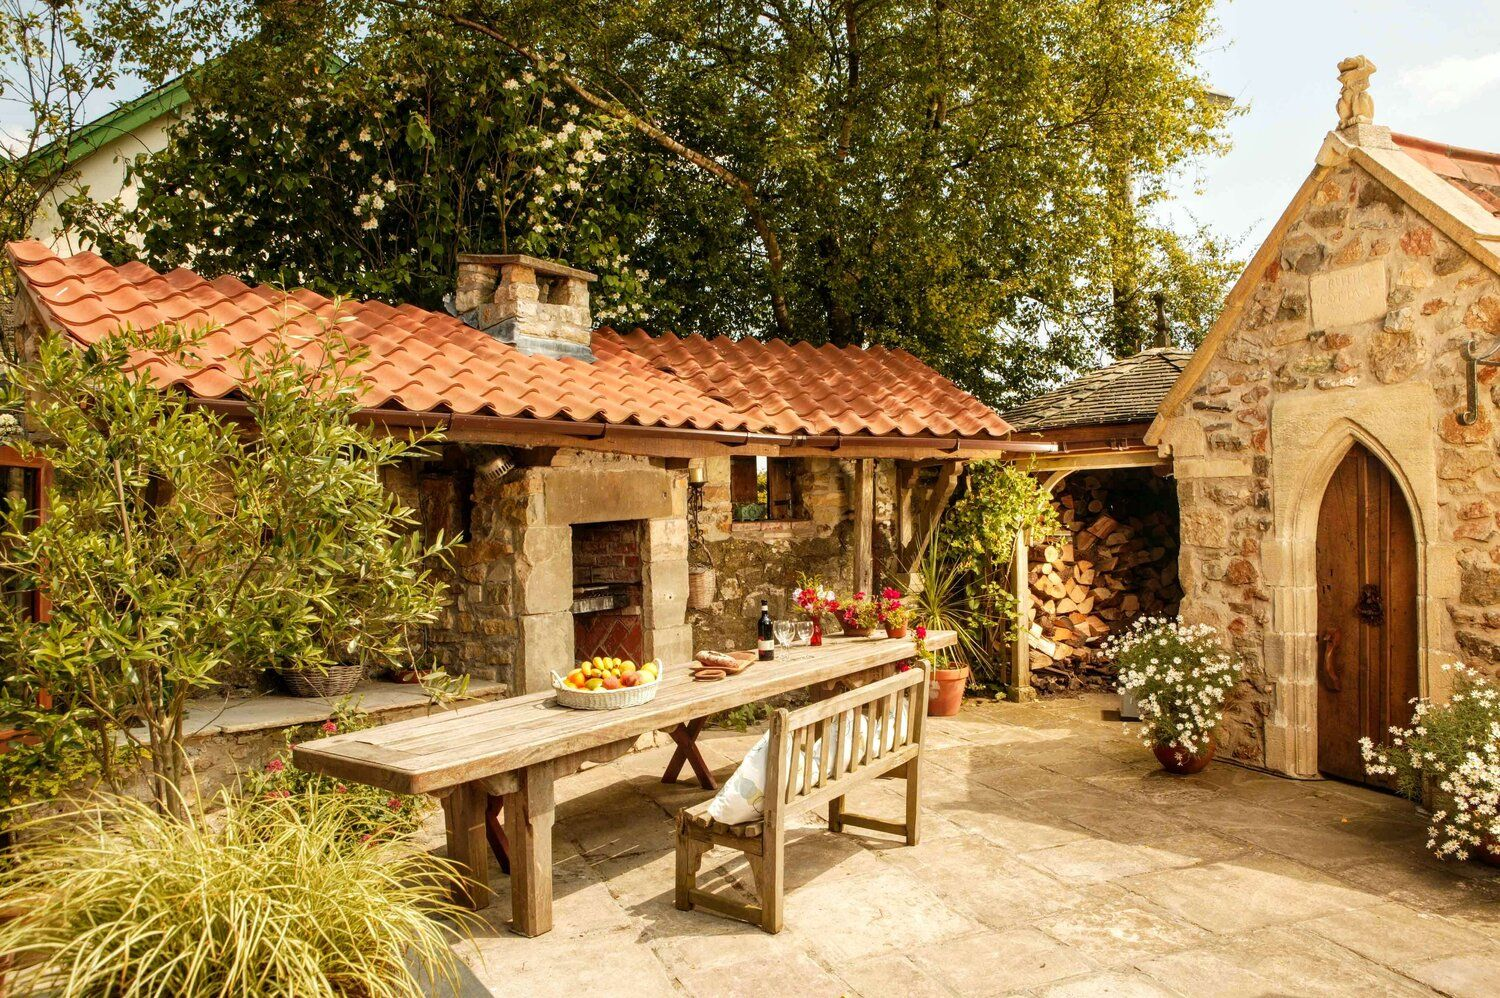 Spindle Cottage Is A 17th Century Property That Today Provides Charming Self Catering Accommodation Located In The Small West Cou In 2020 Holiday Cottage Cottage Hotel